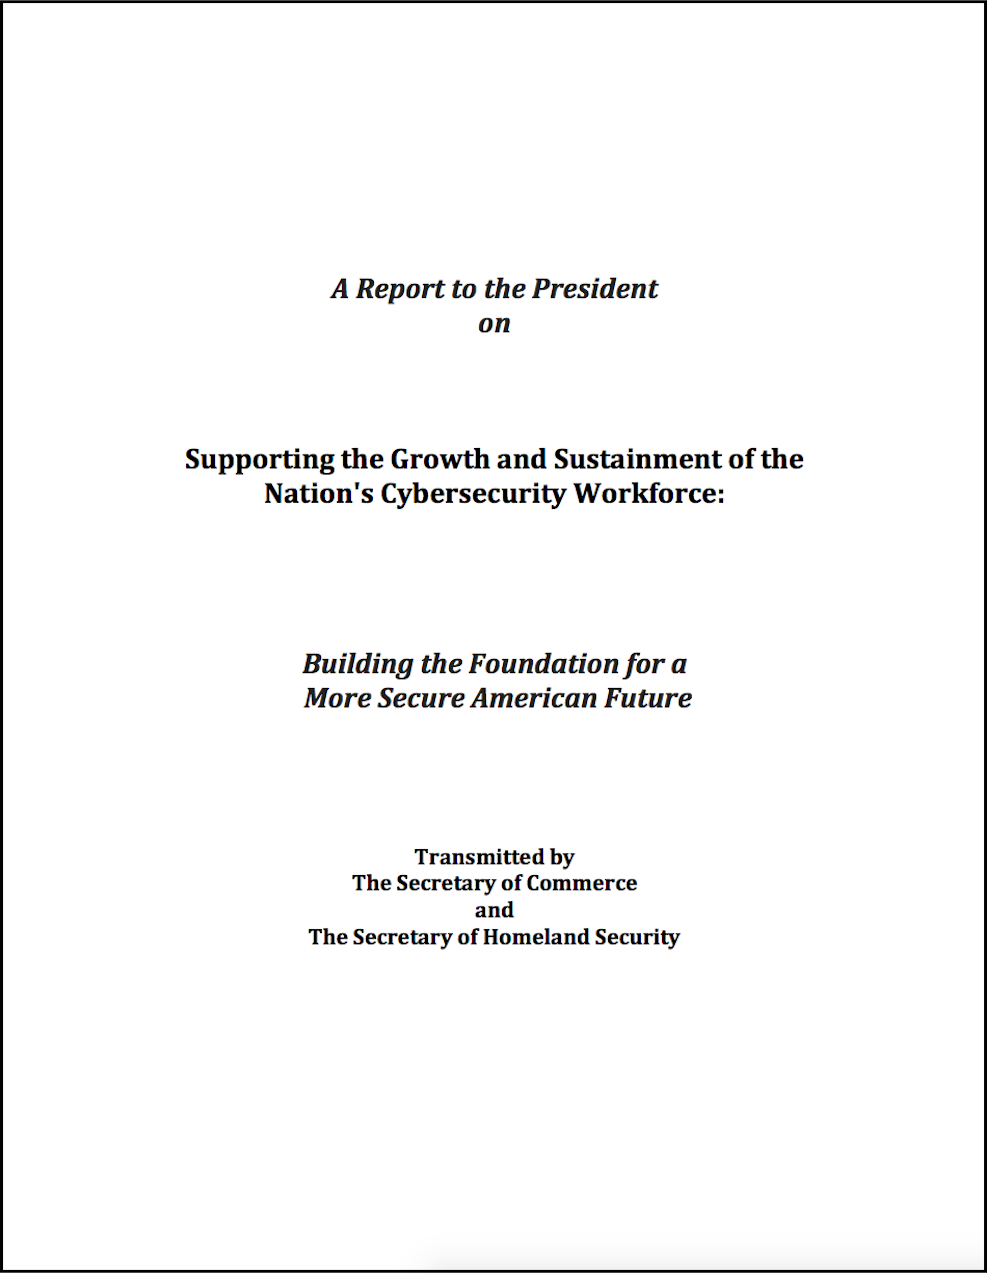 image_front page of report